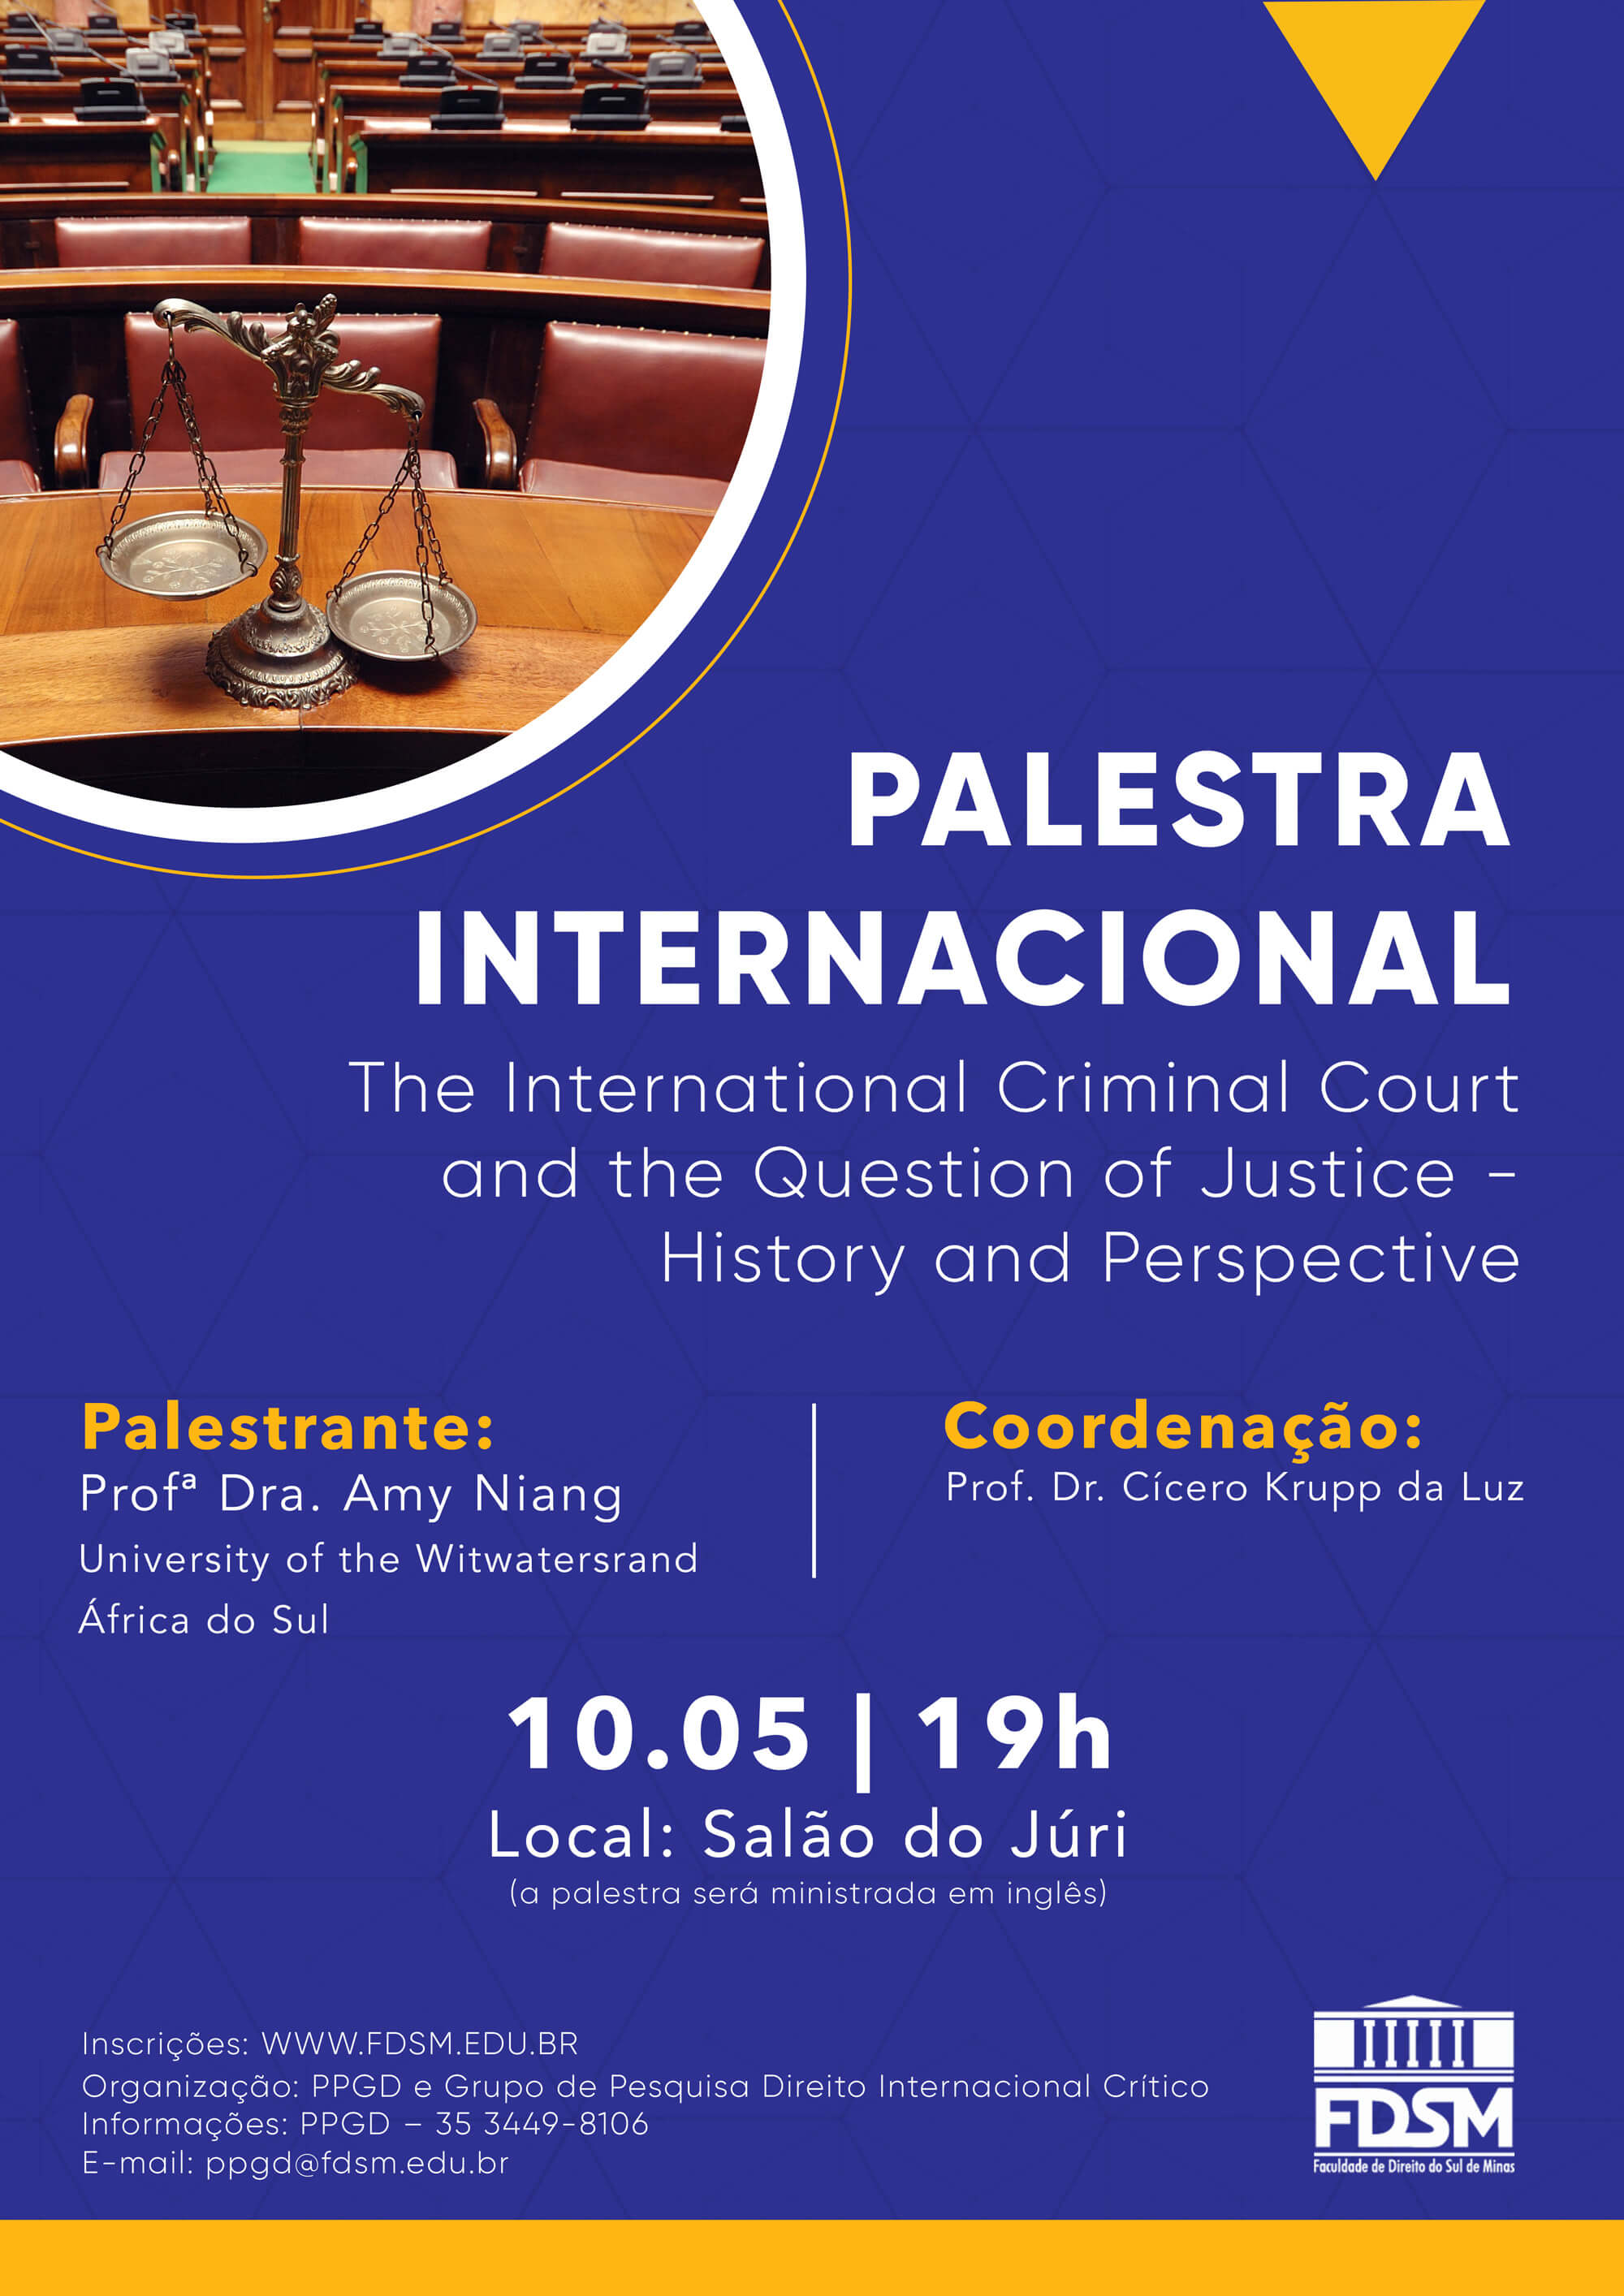 Cód 472:  Palestra Internacional - The International Criminal...